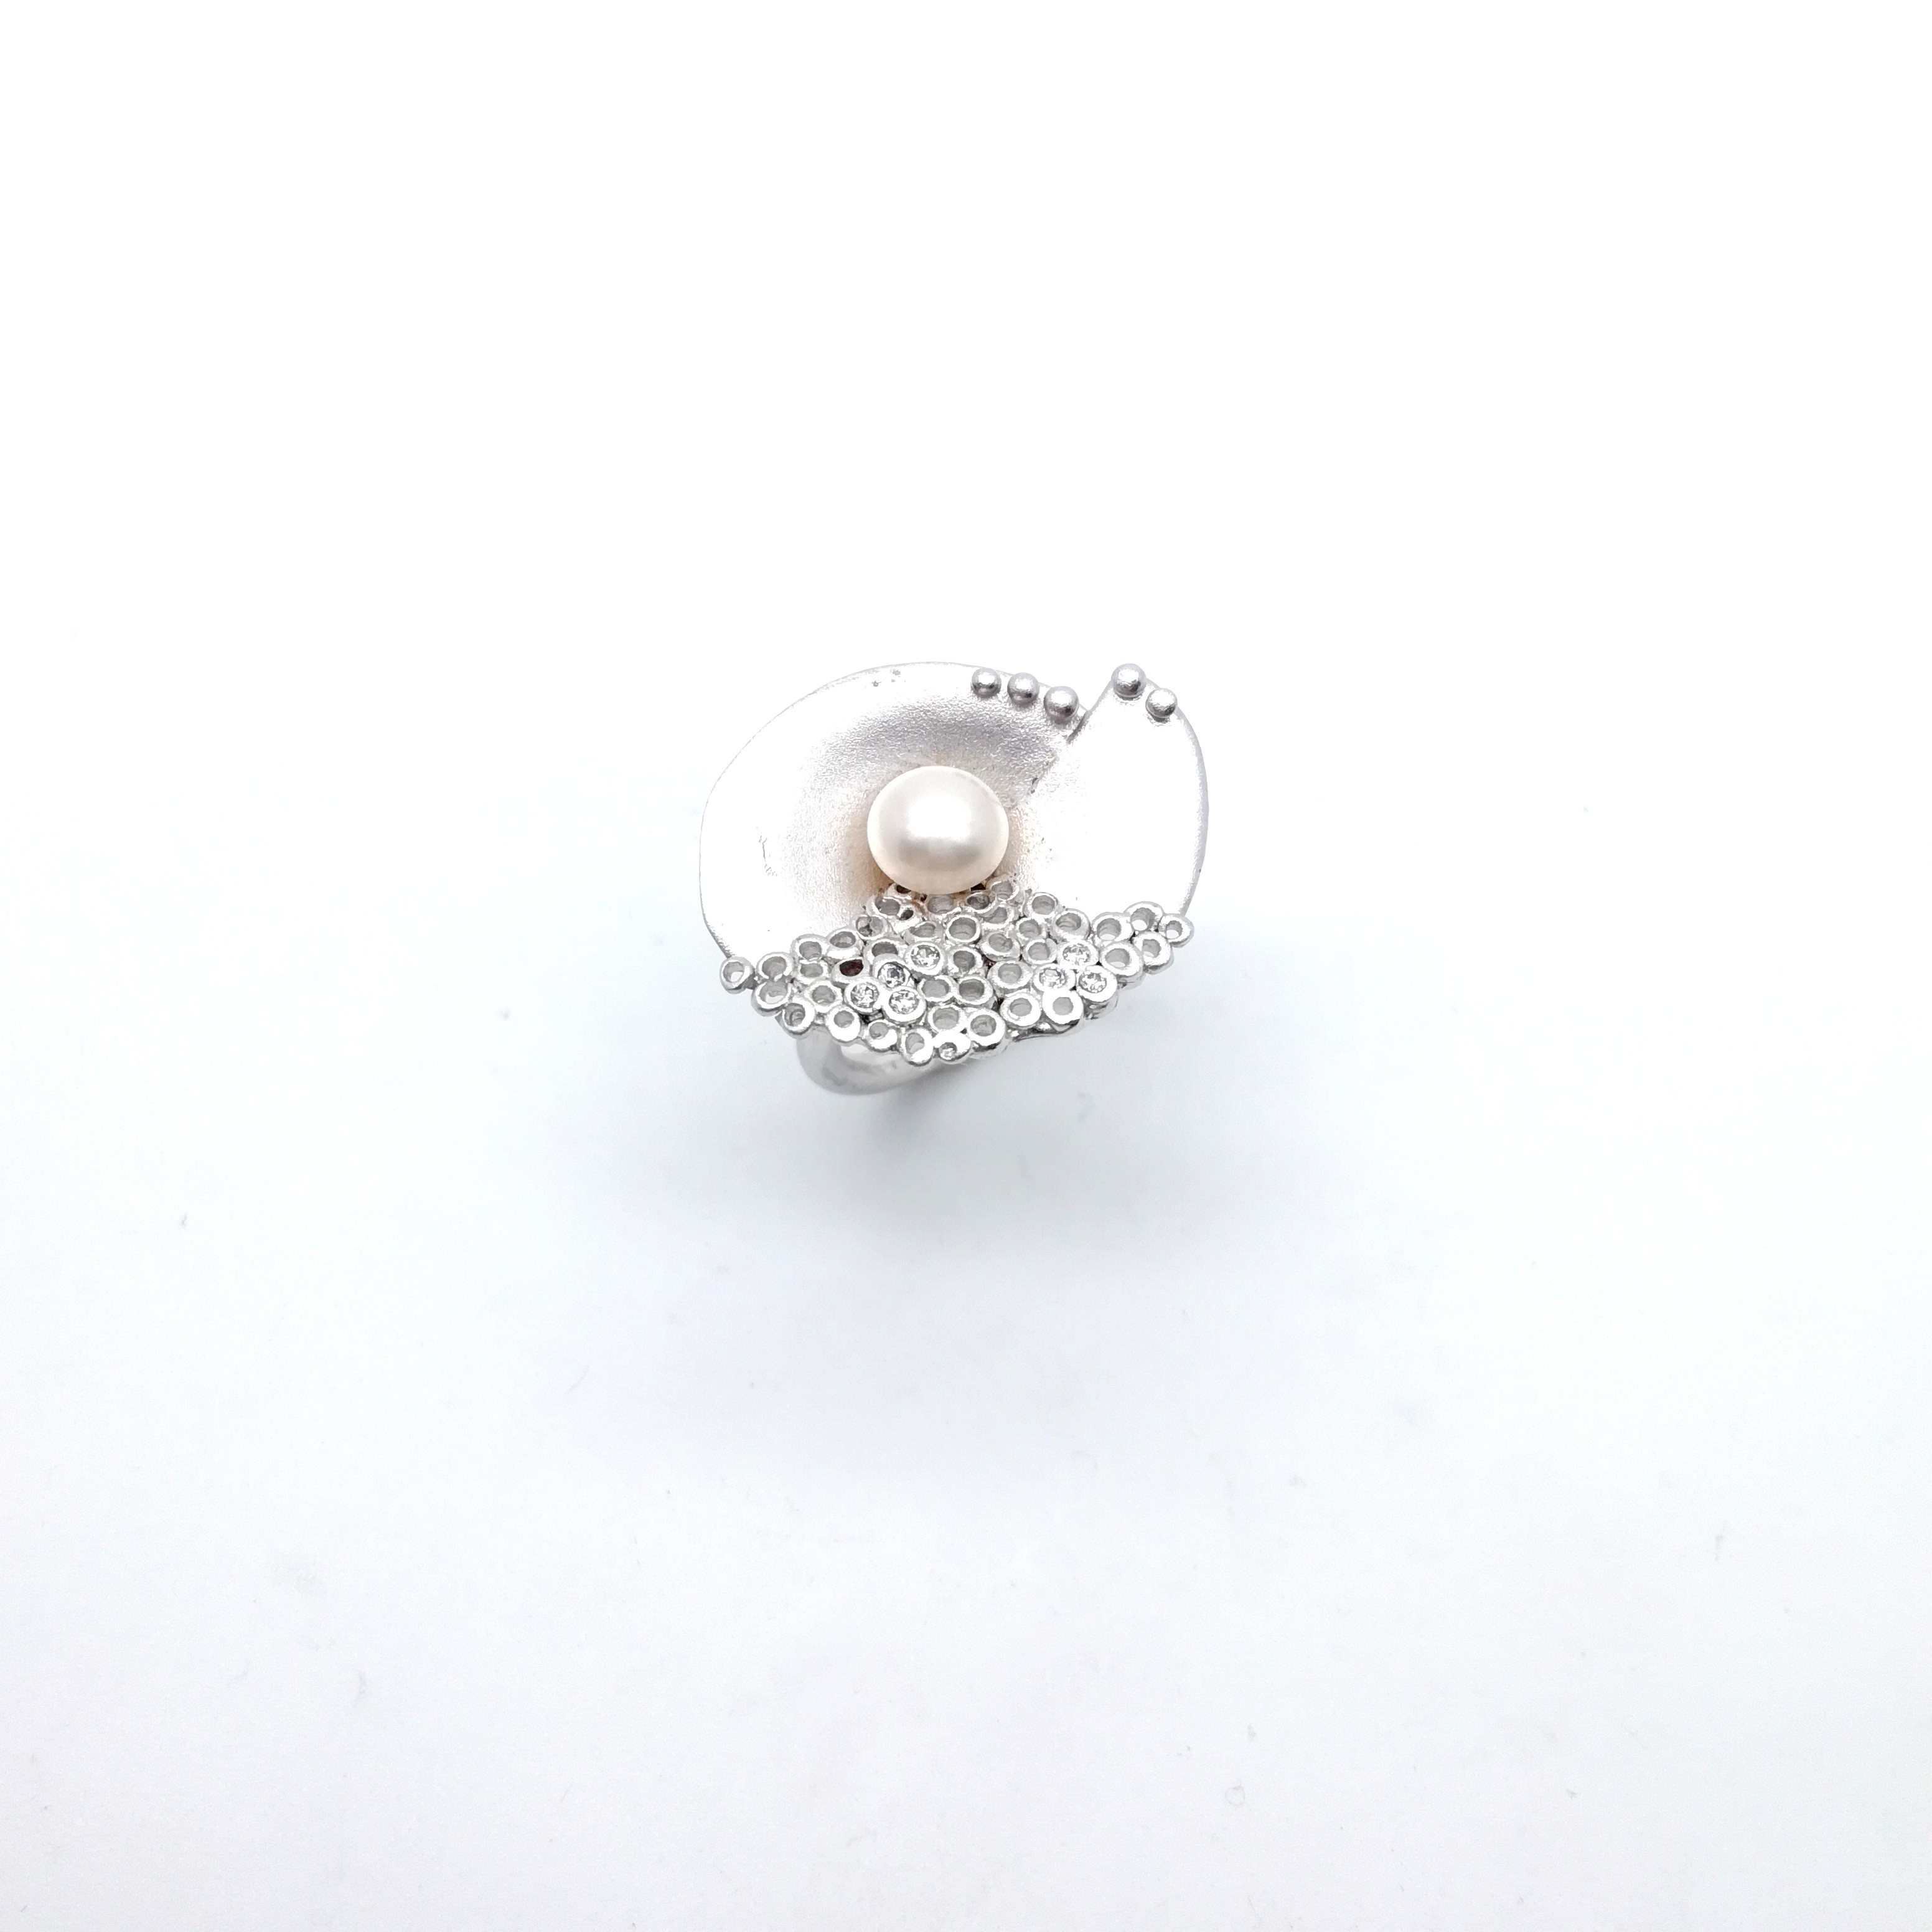 Silver ring 925 black rhodium plated with pearl